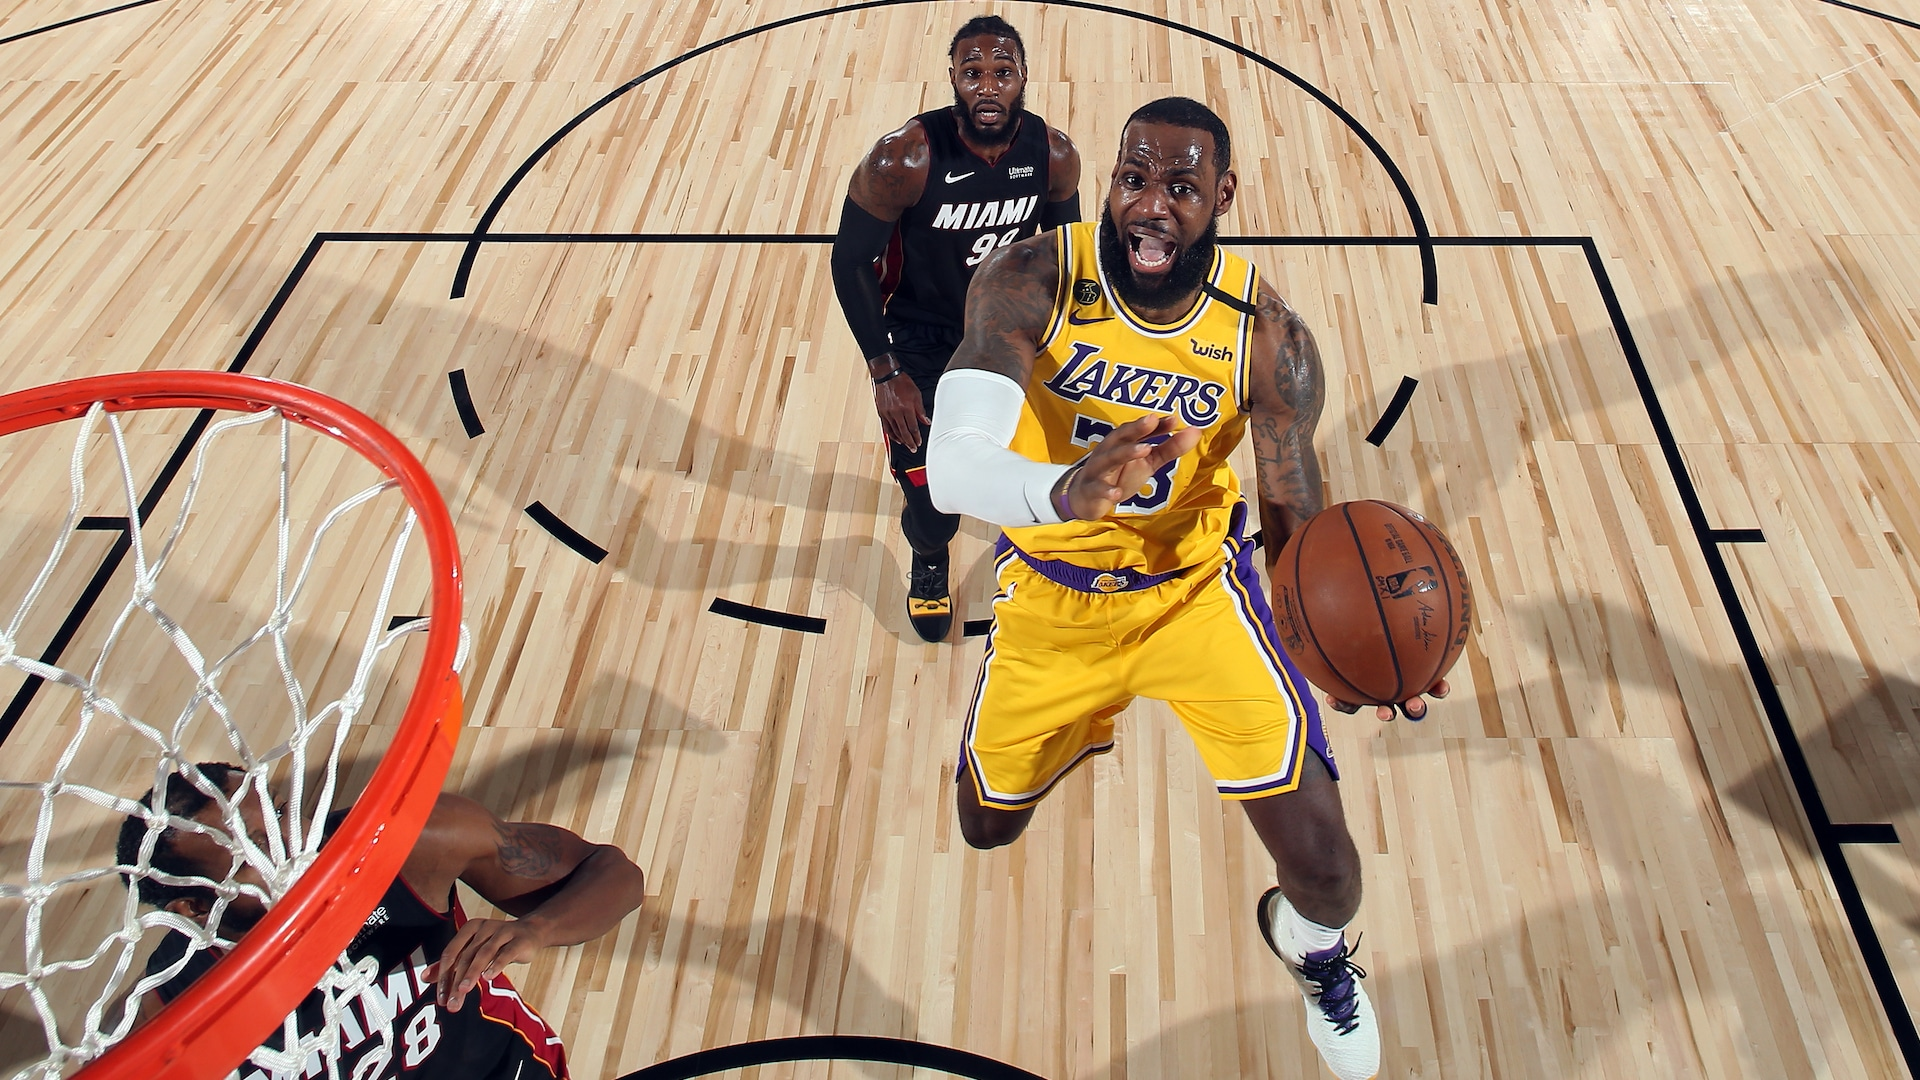 5 things we learned from Game 1 of 2020 Finals